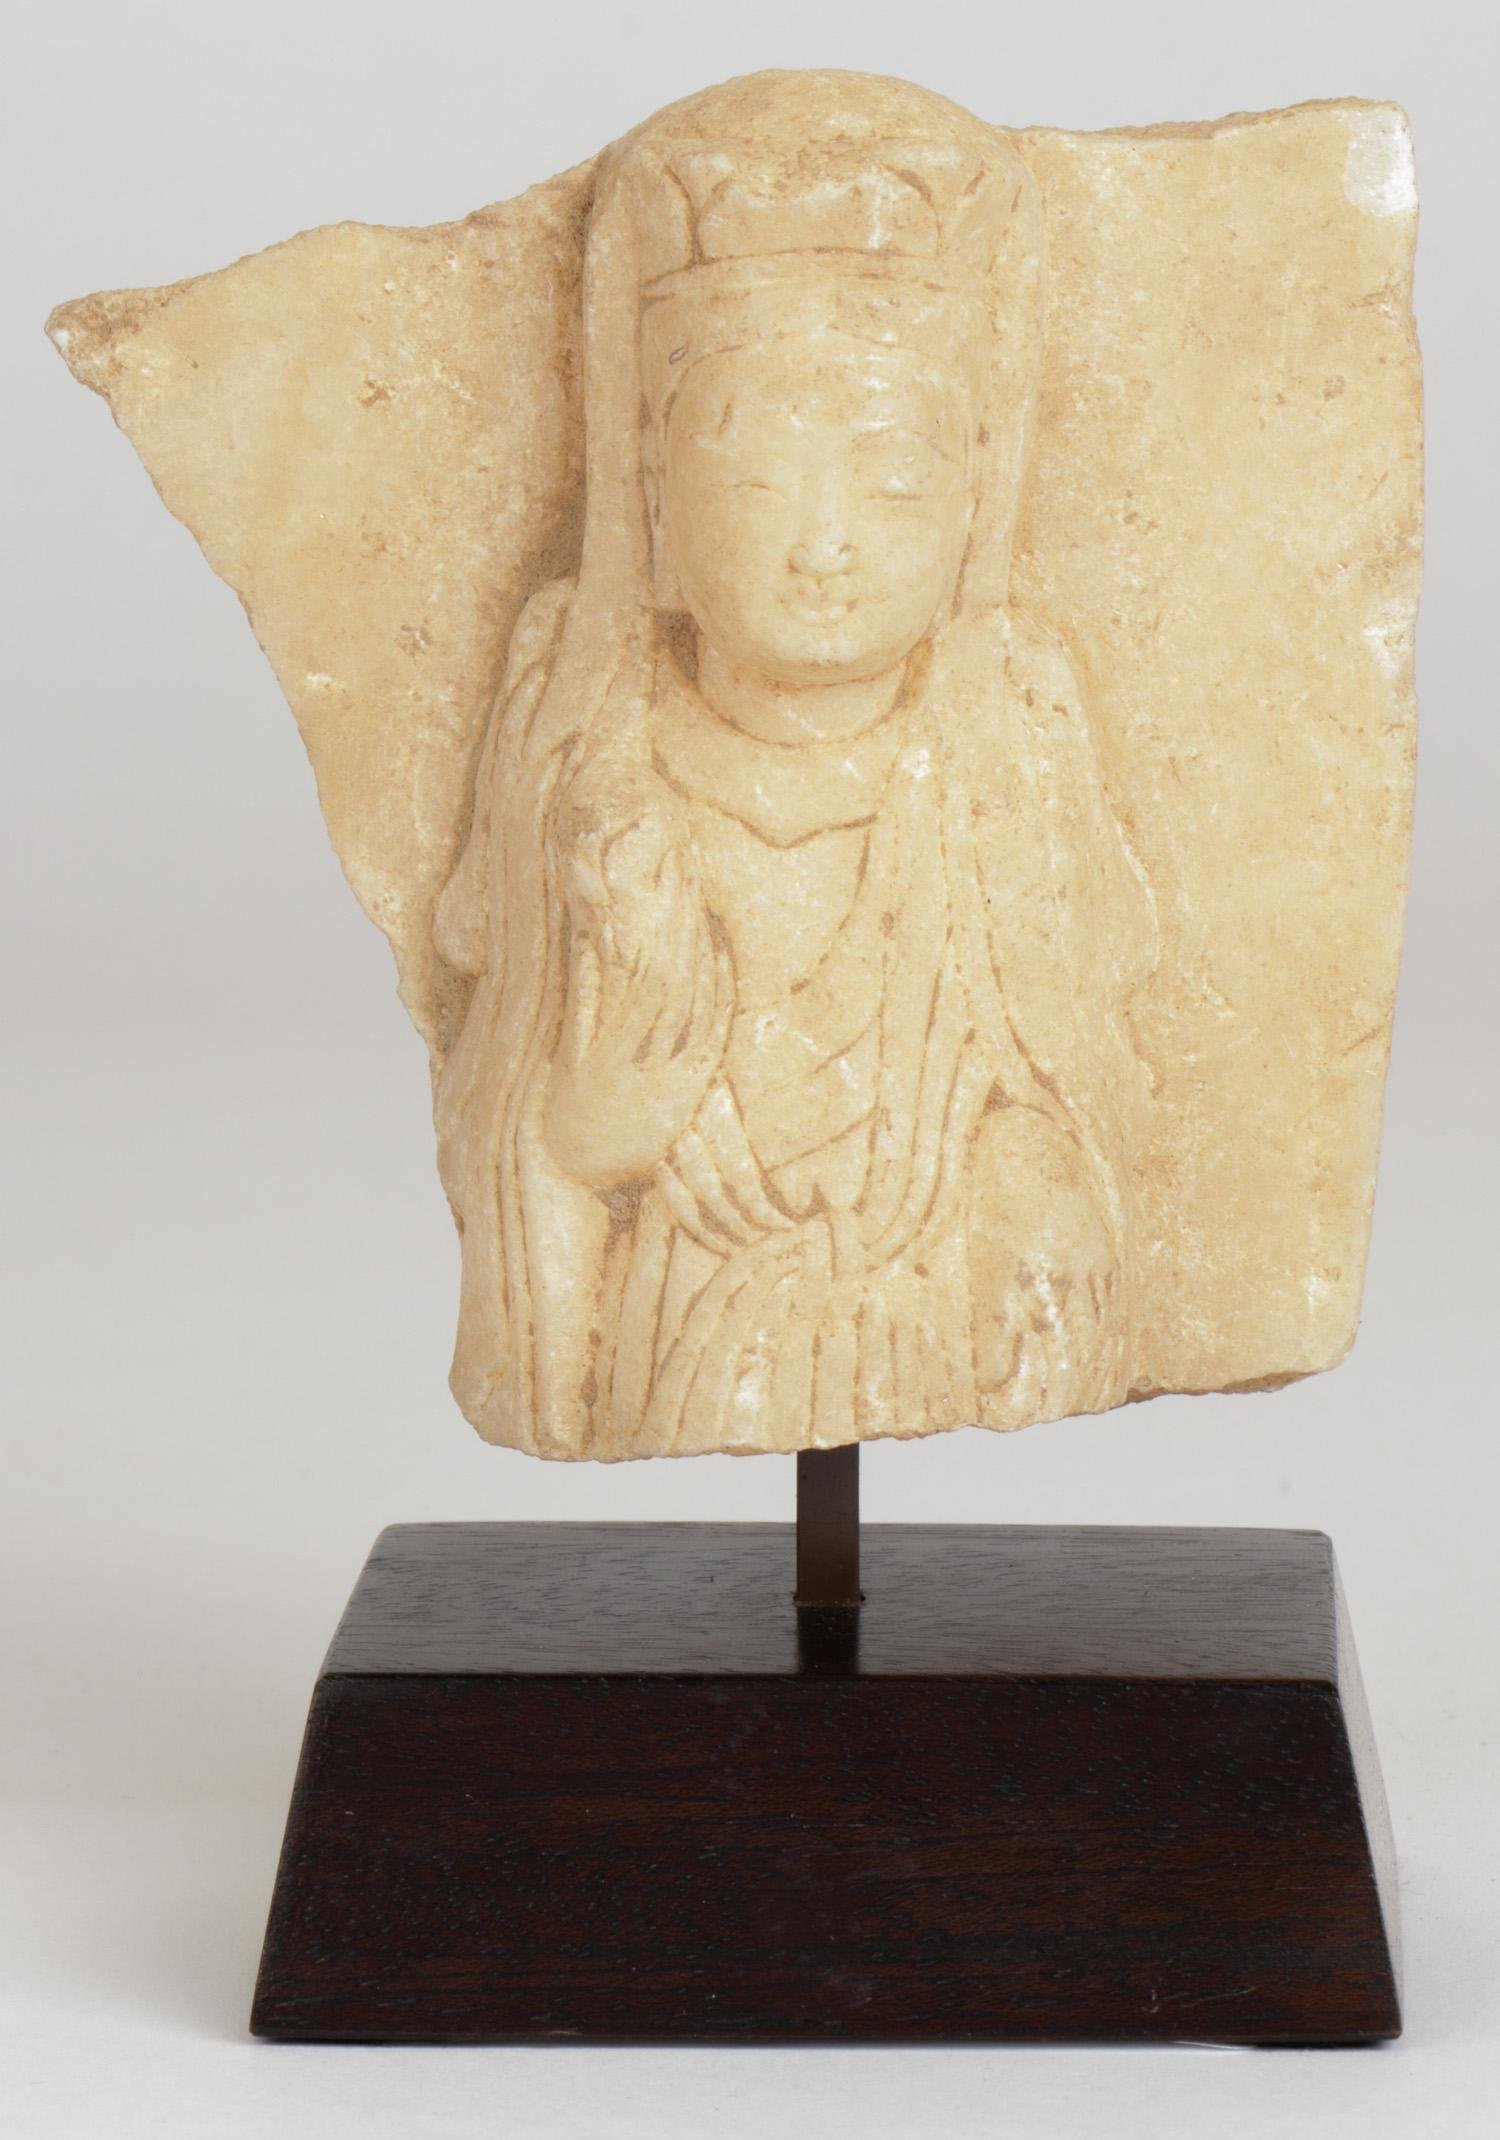 Carved Marble Fragment of a Boddhisatva, Northern Qing